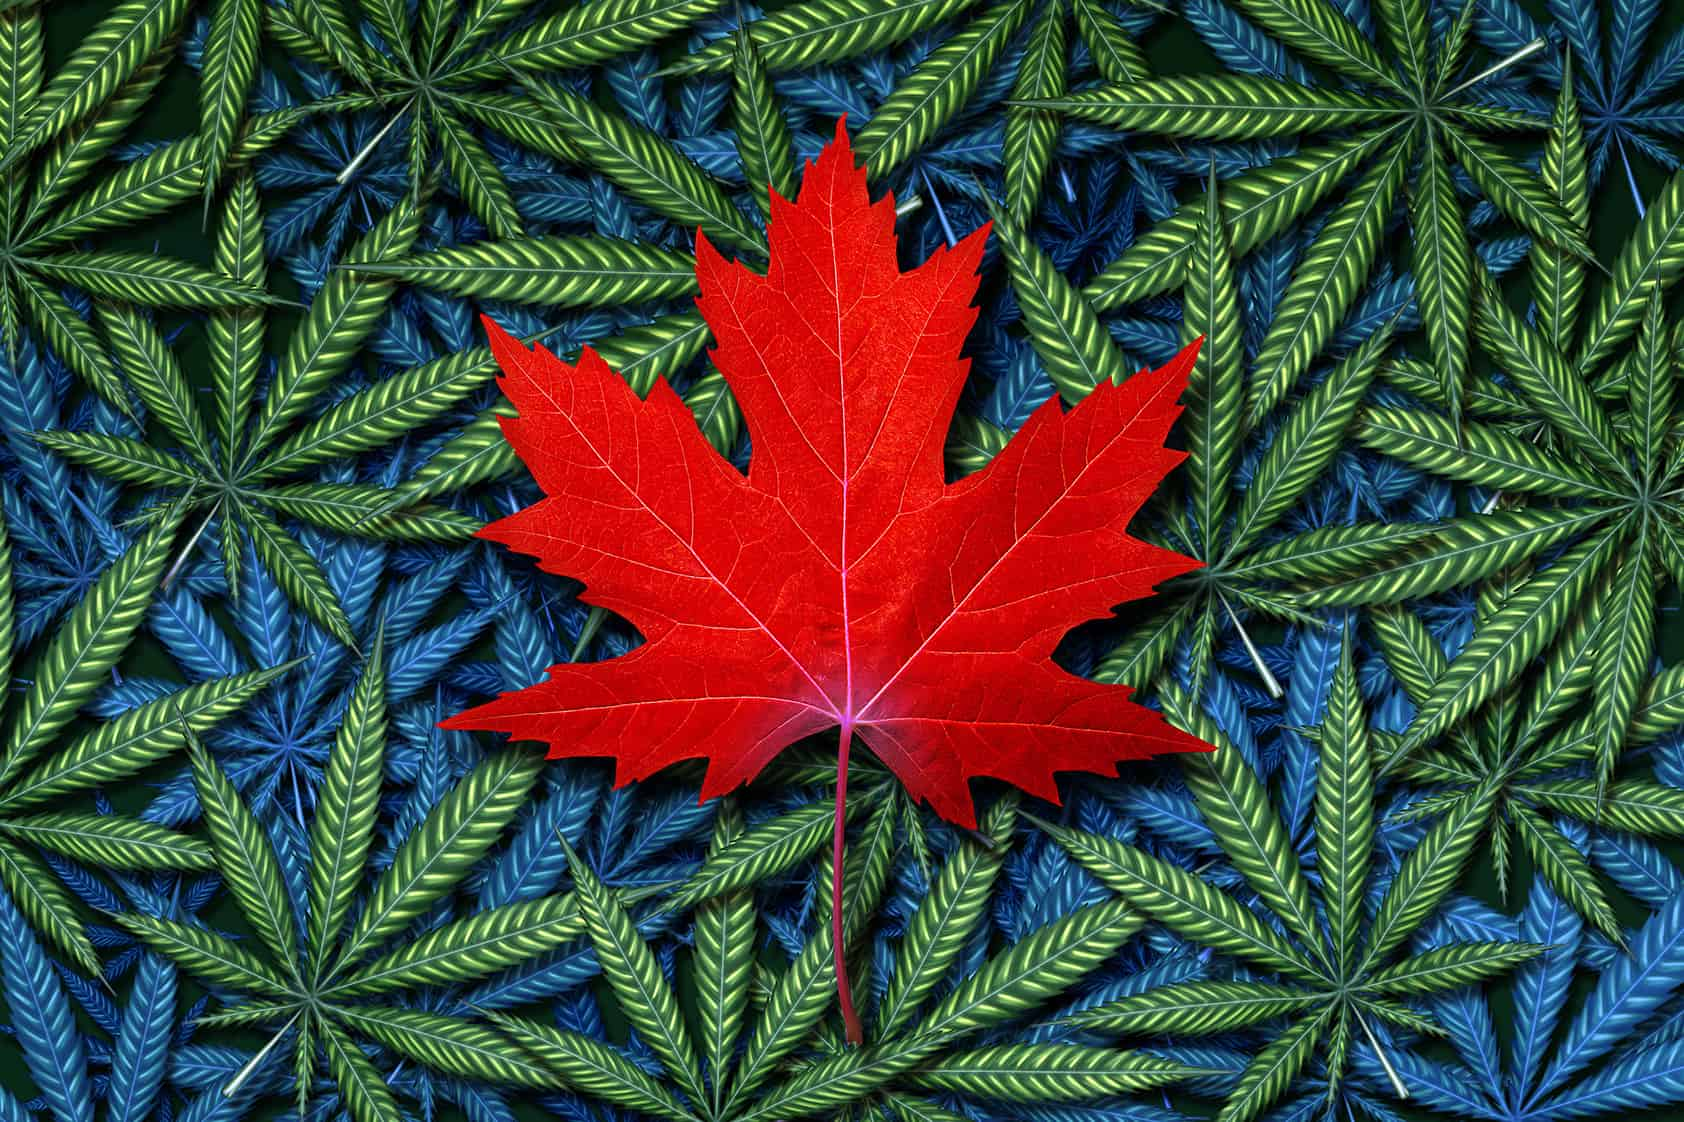 Maple leaf and cannabis for ACMPR